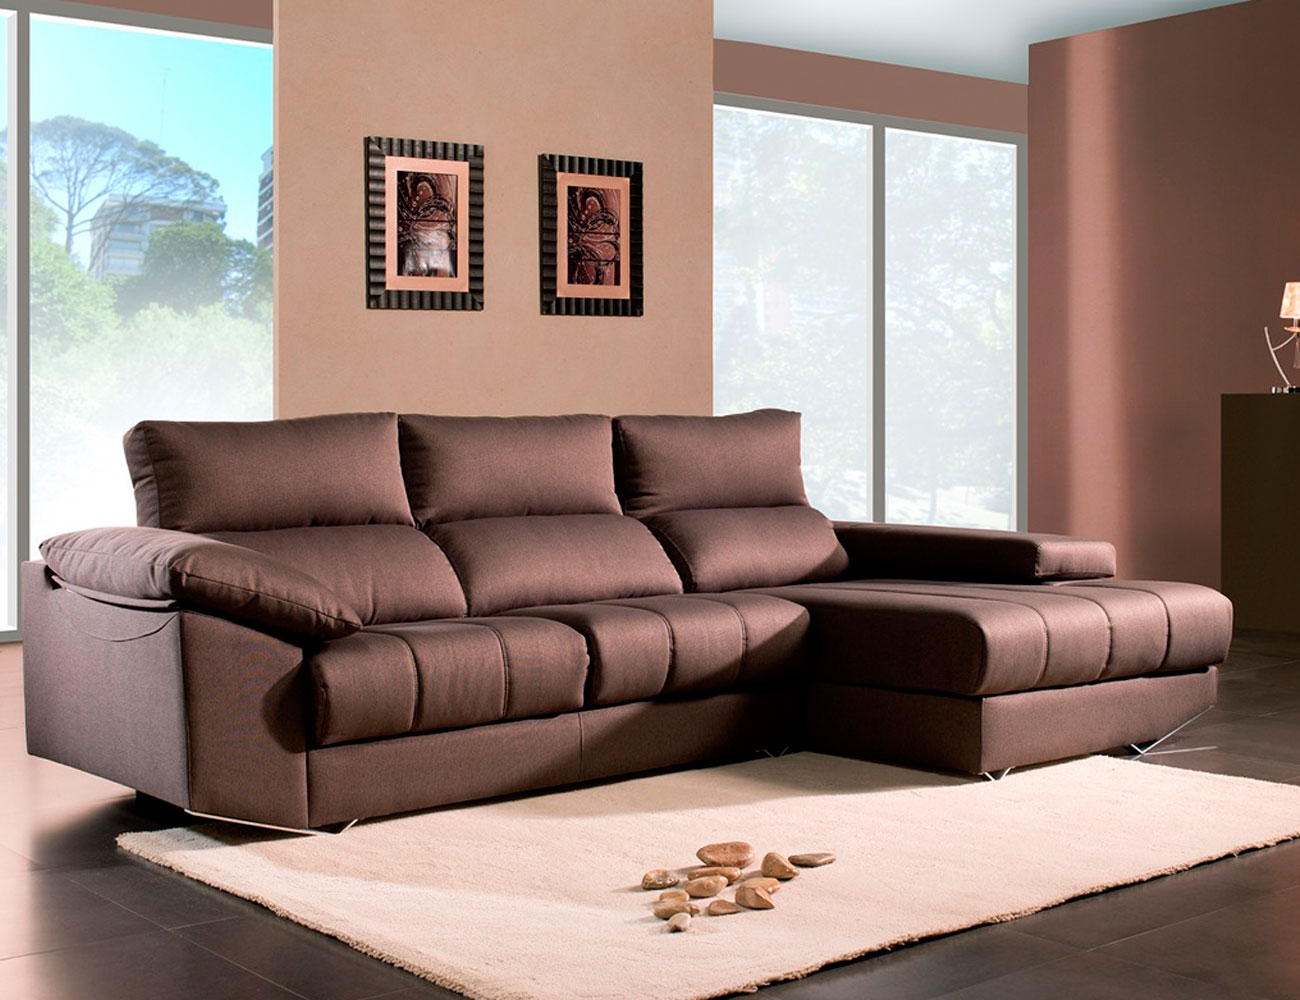 Sofa chaiselongue moderno brazo mecanico12